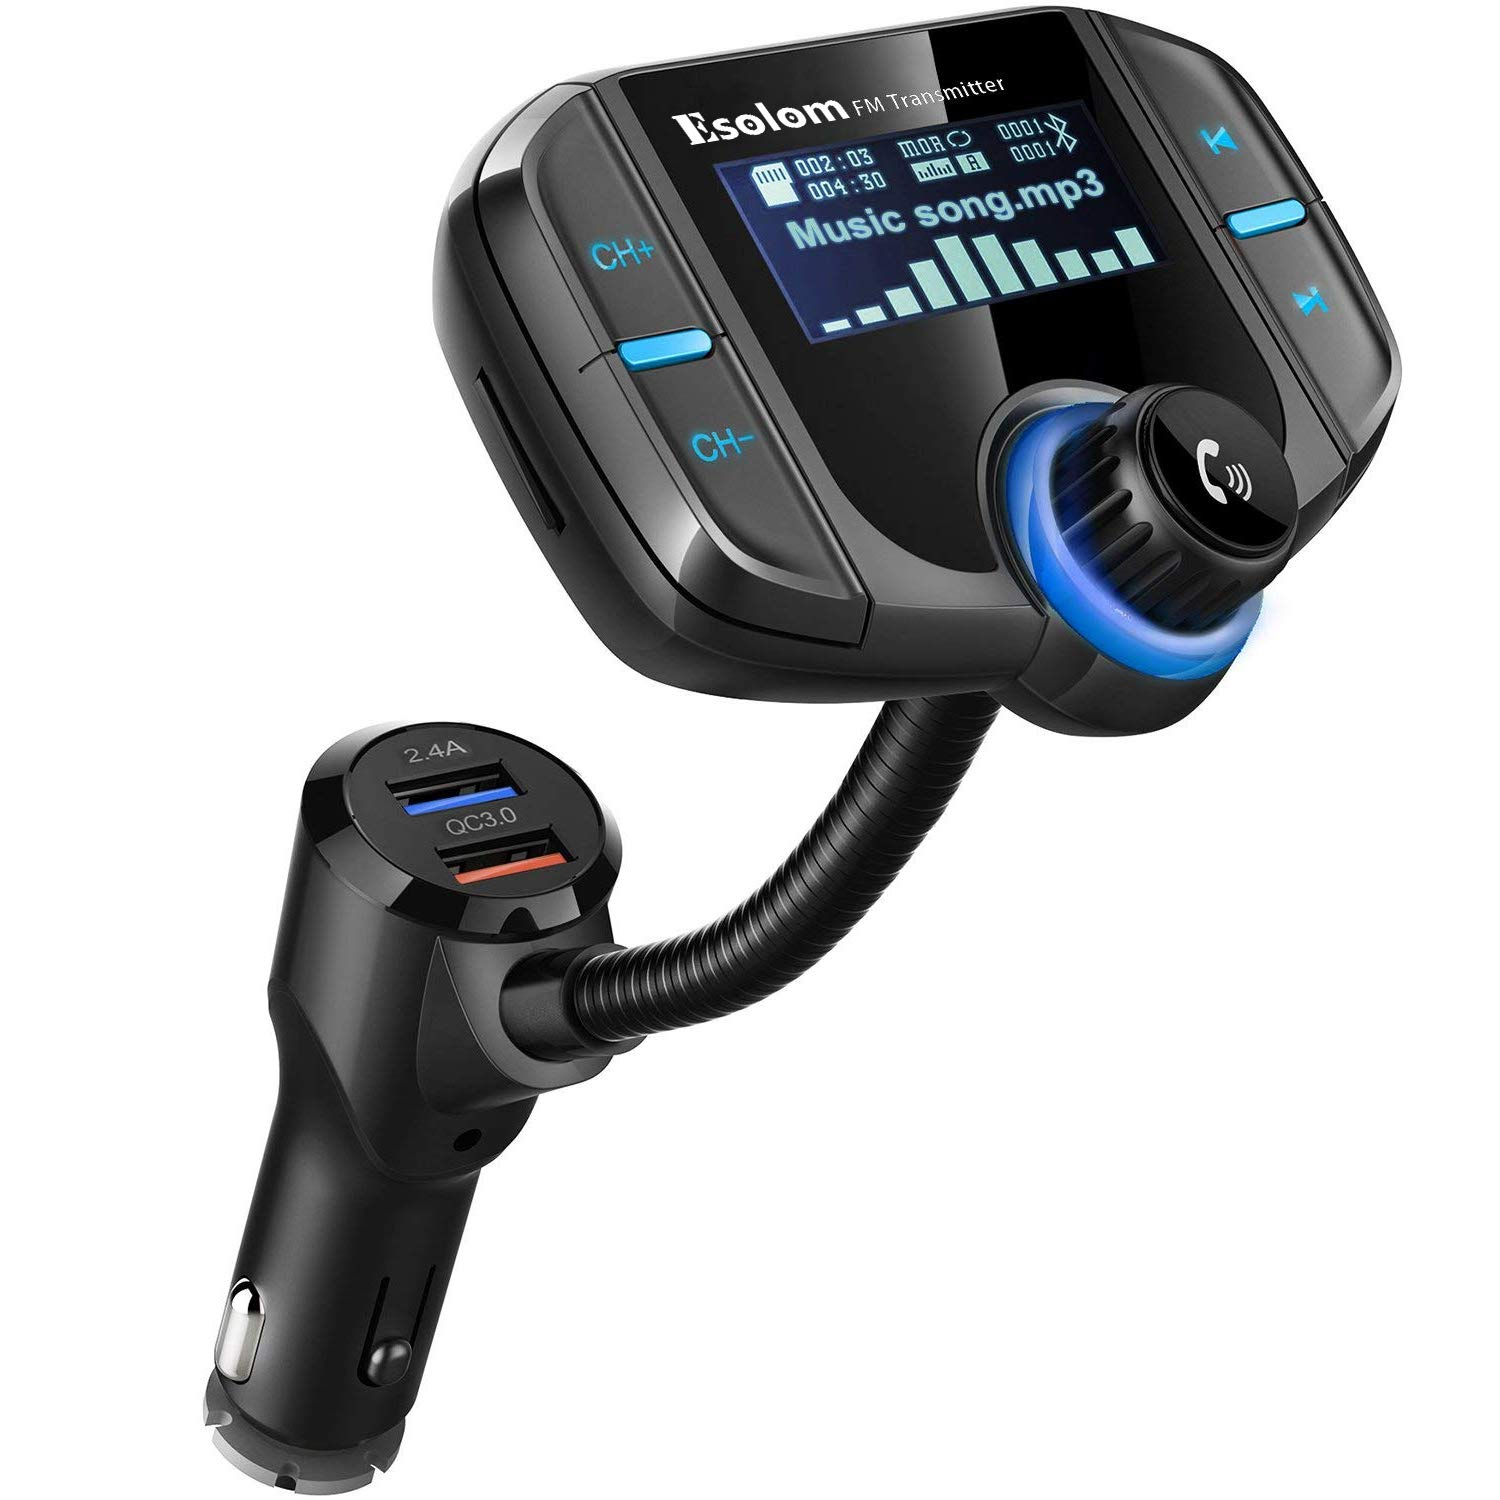 Bluetooth Fm Transmitter Esolom Wireless Car Stereo Also With Simple Radio Circuit Adapter Receiver Hands Free Calling Kit 17 Display Qc30 Smart 24a